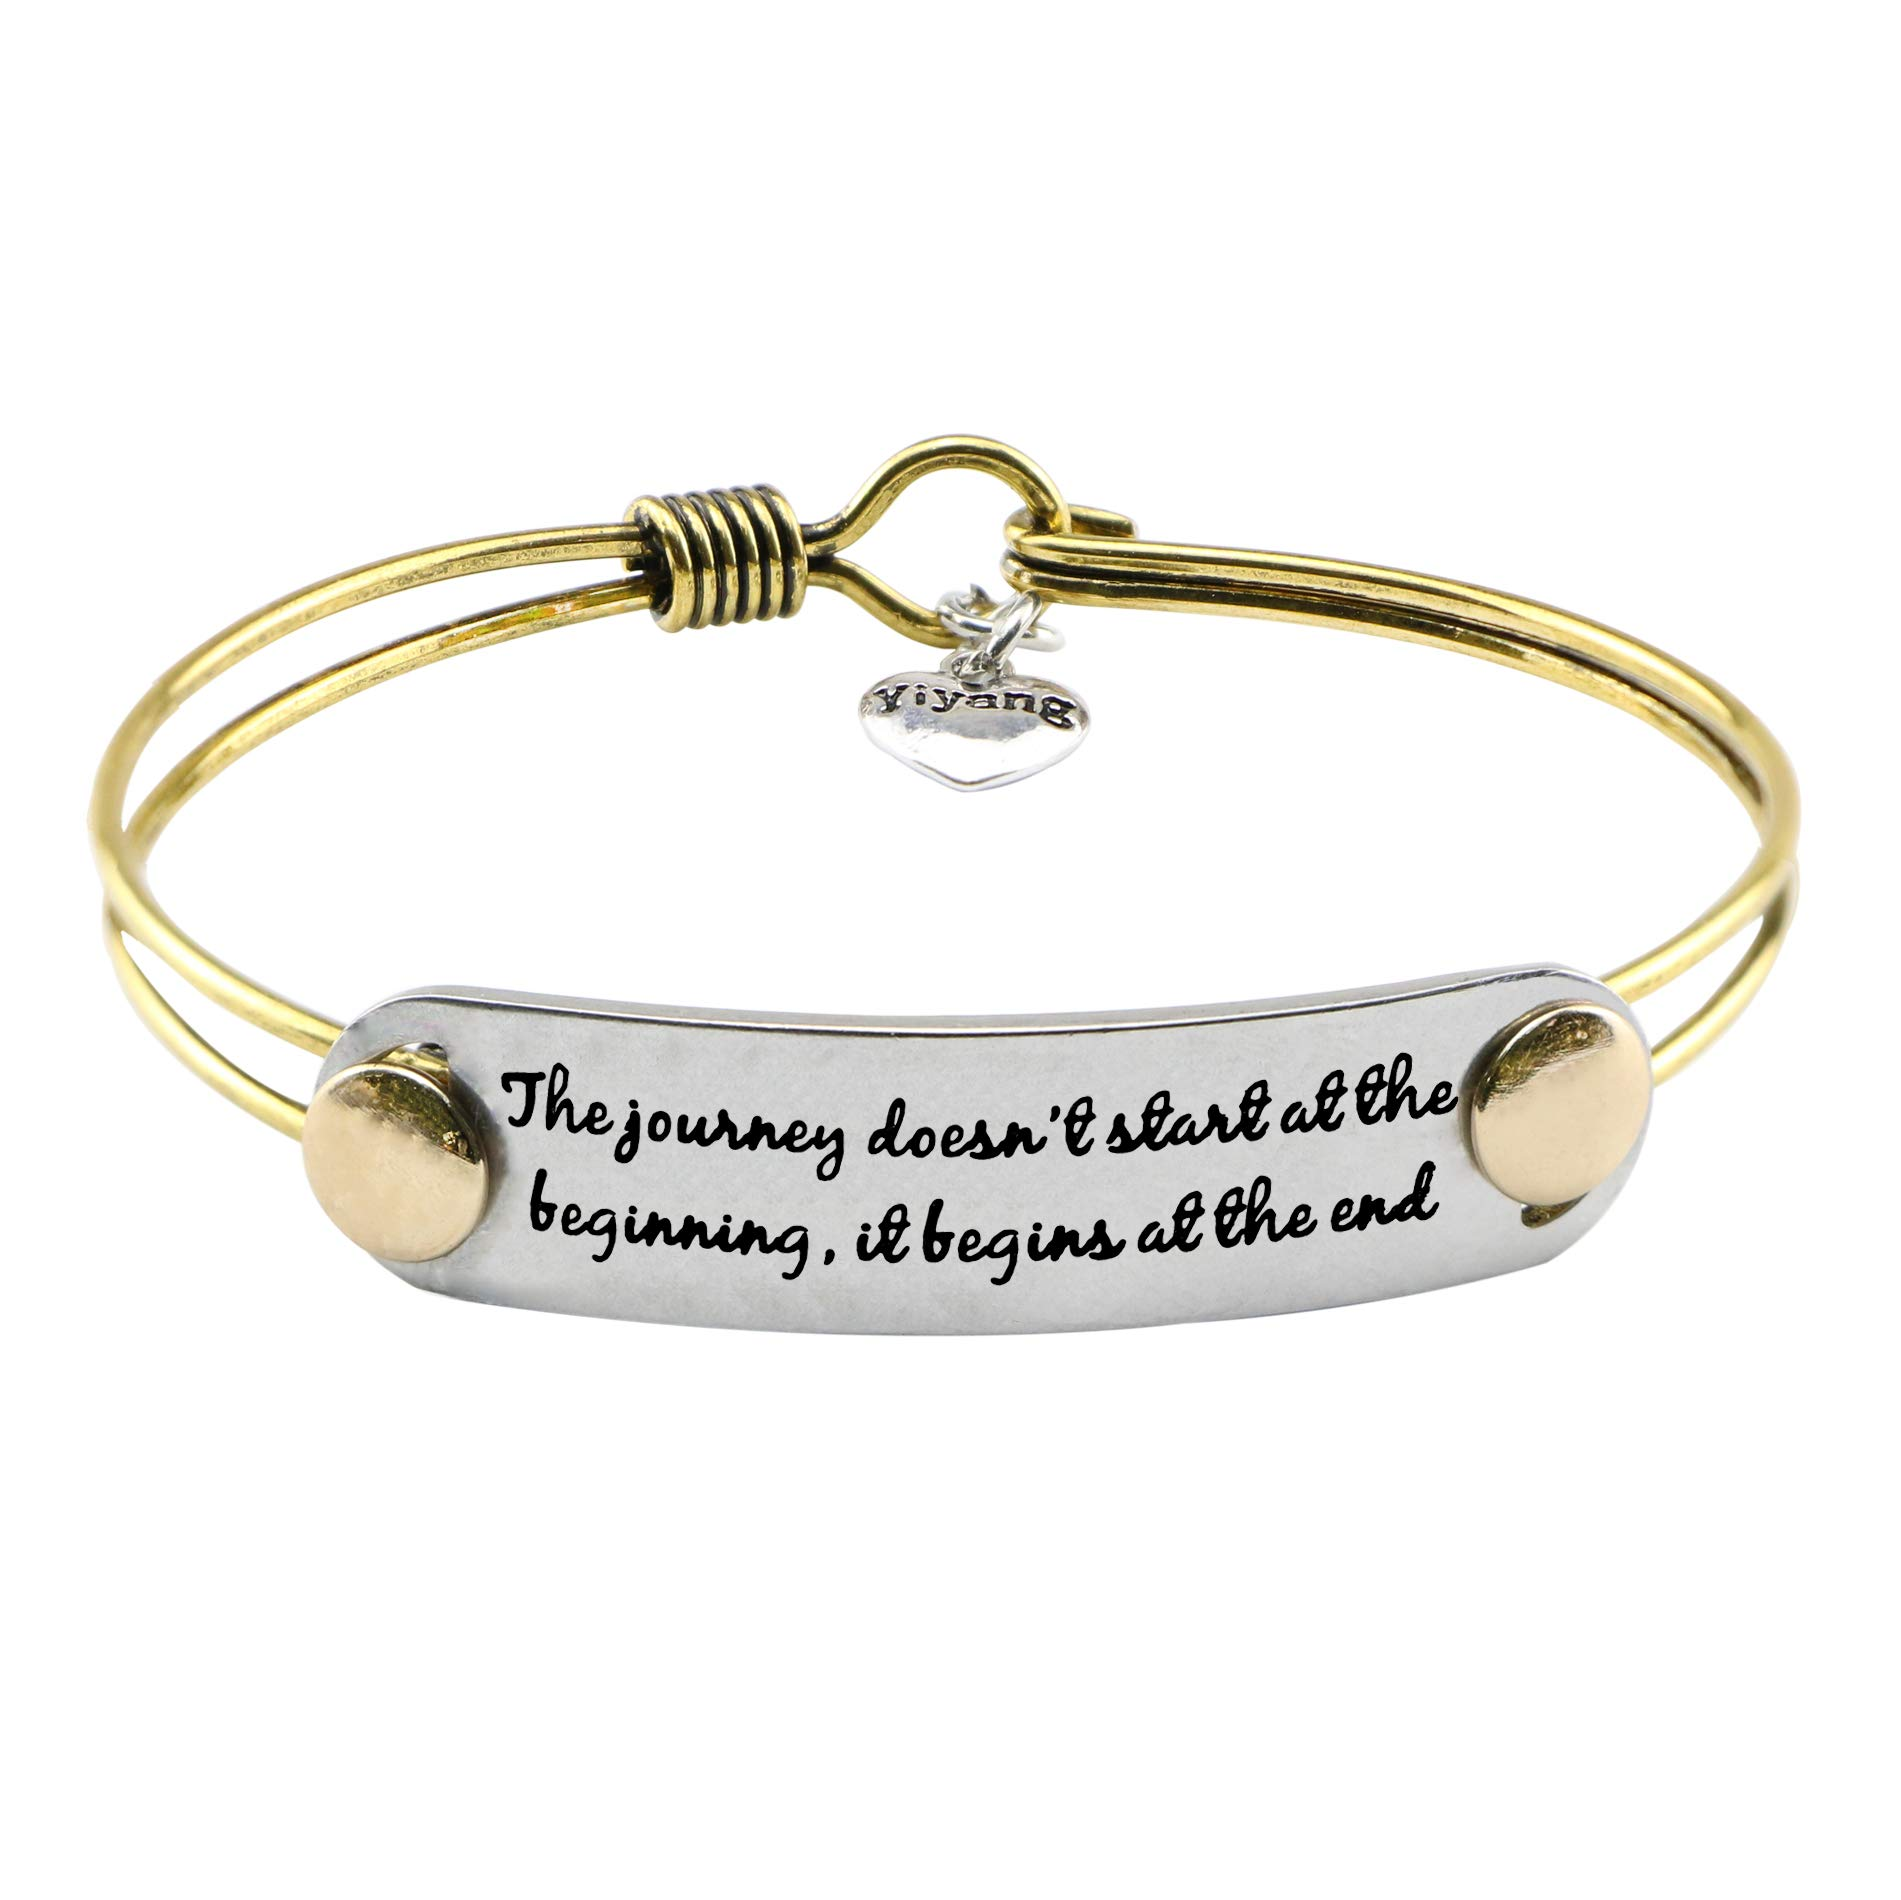 UNQJRY Antique Bracelets for Friends Graduation Jewelry Birthday with Inspirational Quote Though she be but Little, she is Fierce